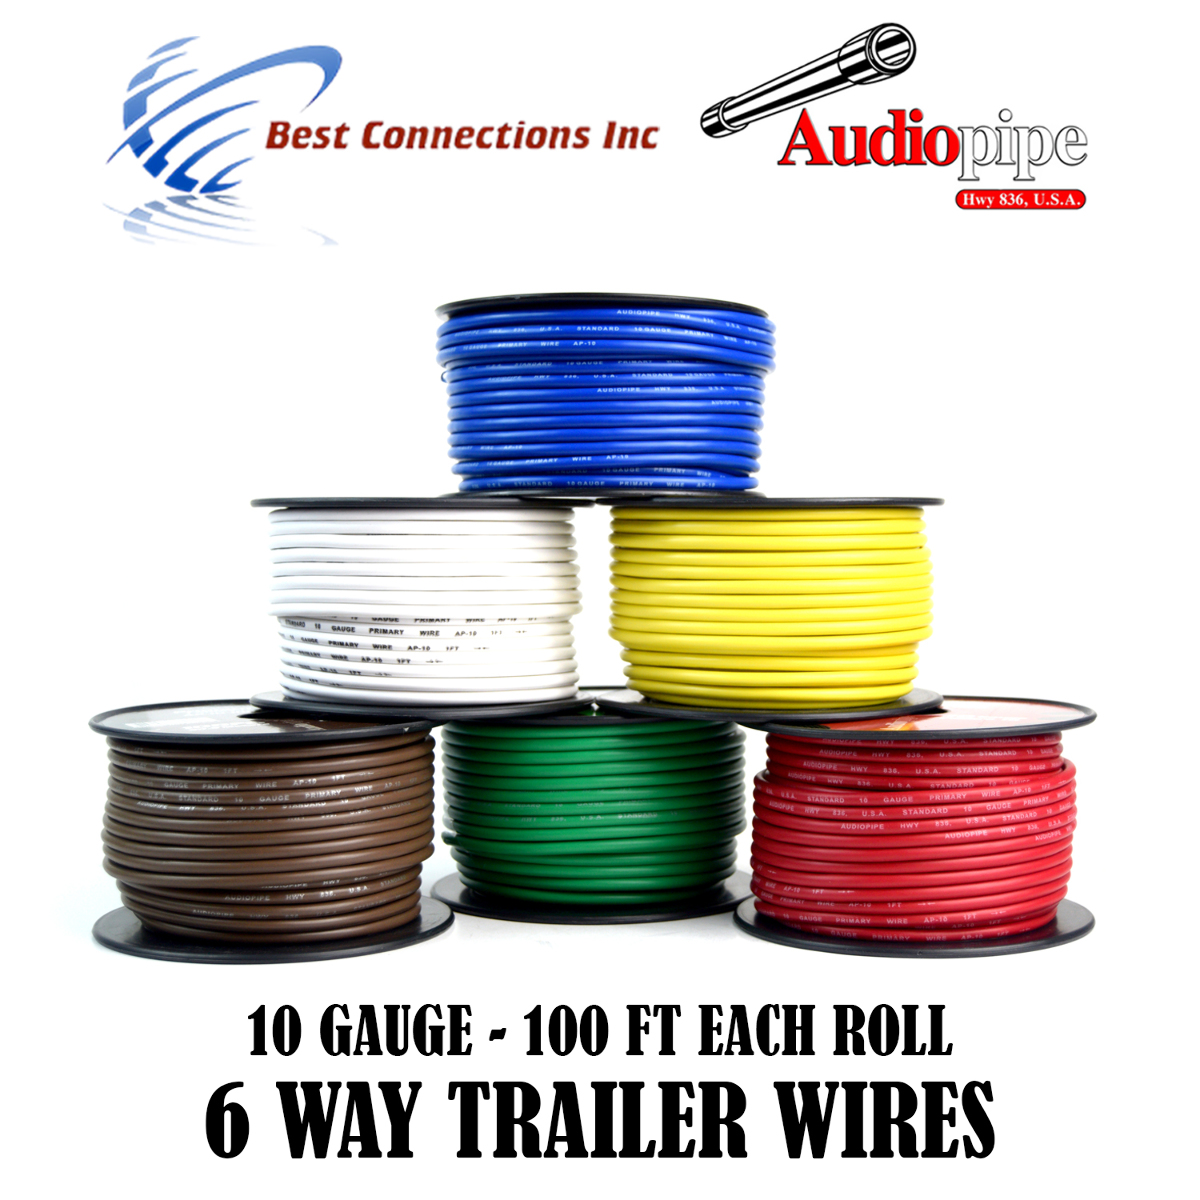 Trailer Wiring Cable Detailed Schematics Diagram Plug 6 Way Wire Light For Harness Led 100ft Each Roll 10 5